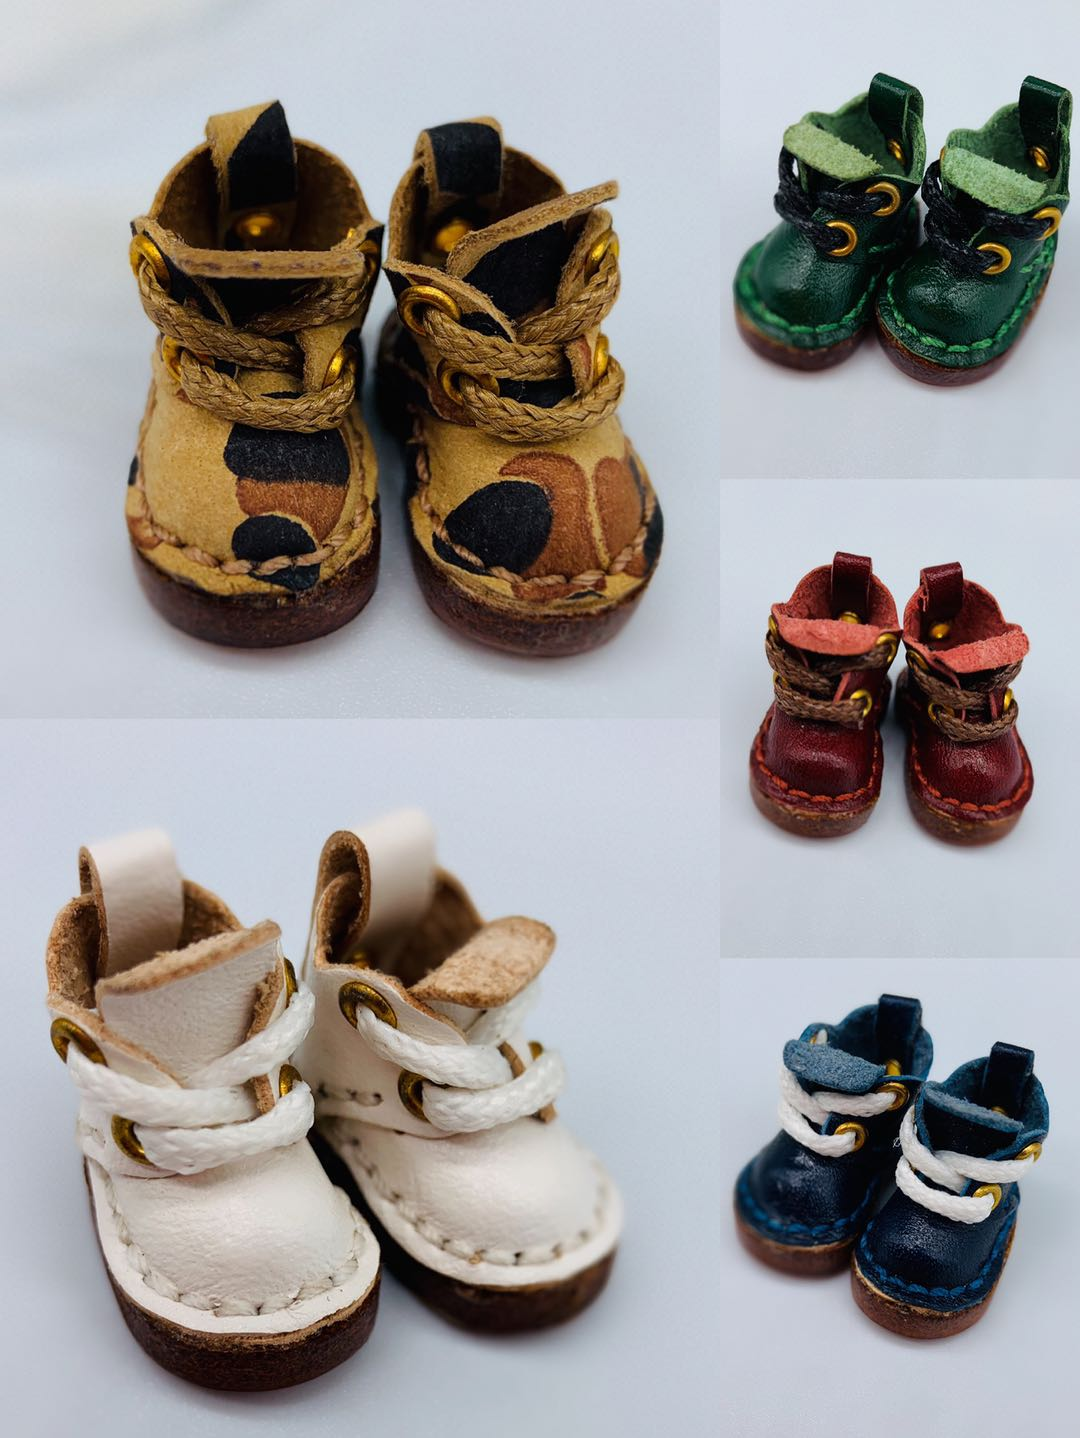 Ob11 shoes BJD shoes vegetable tanned leather cattle leather boots DDF GSC baby leather pure hand-made shoes